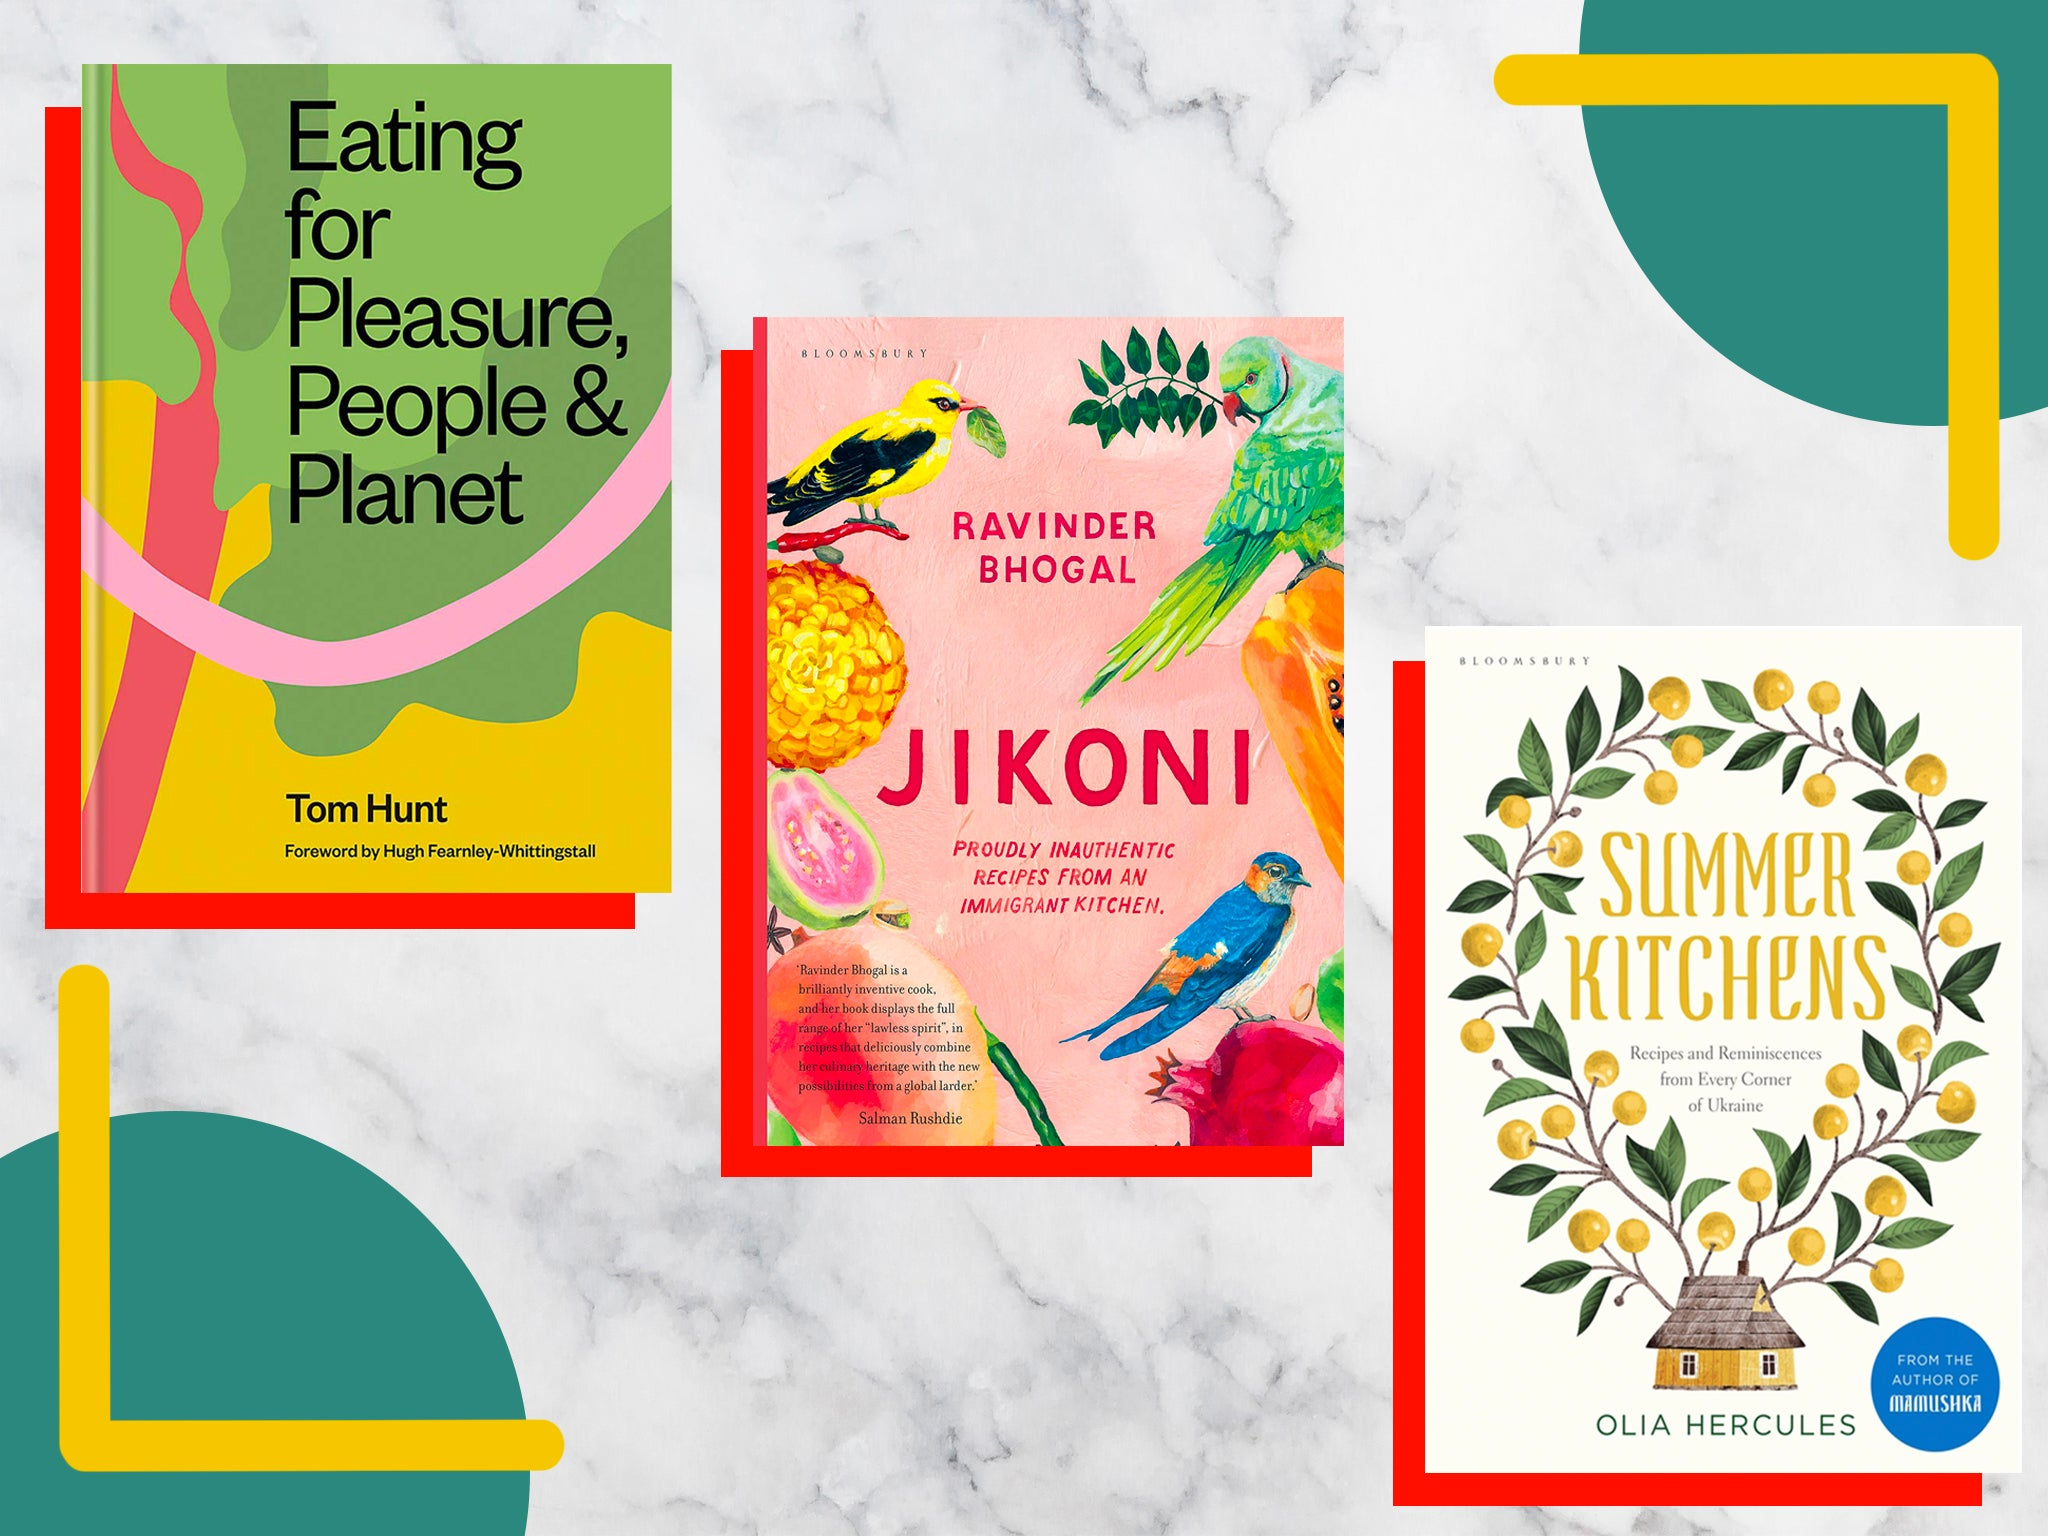 André Simon Awards 2020 Food Books To Add To Your Collection The Independent